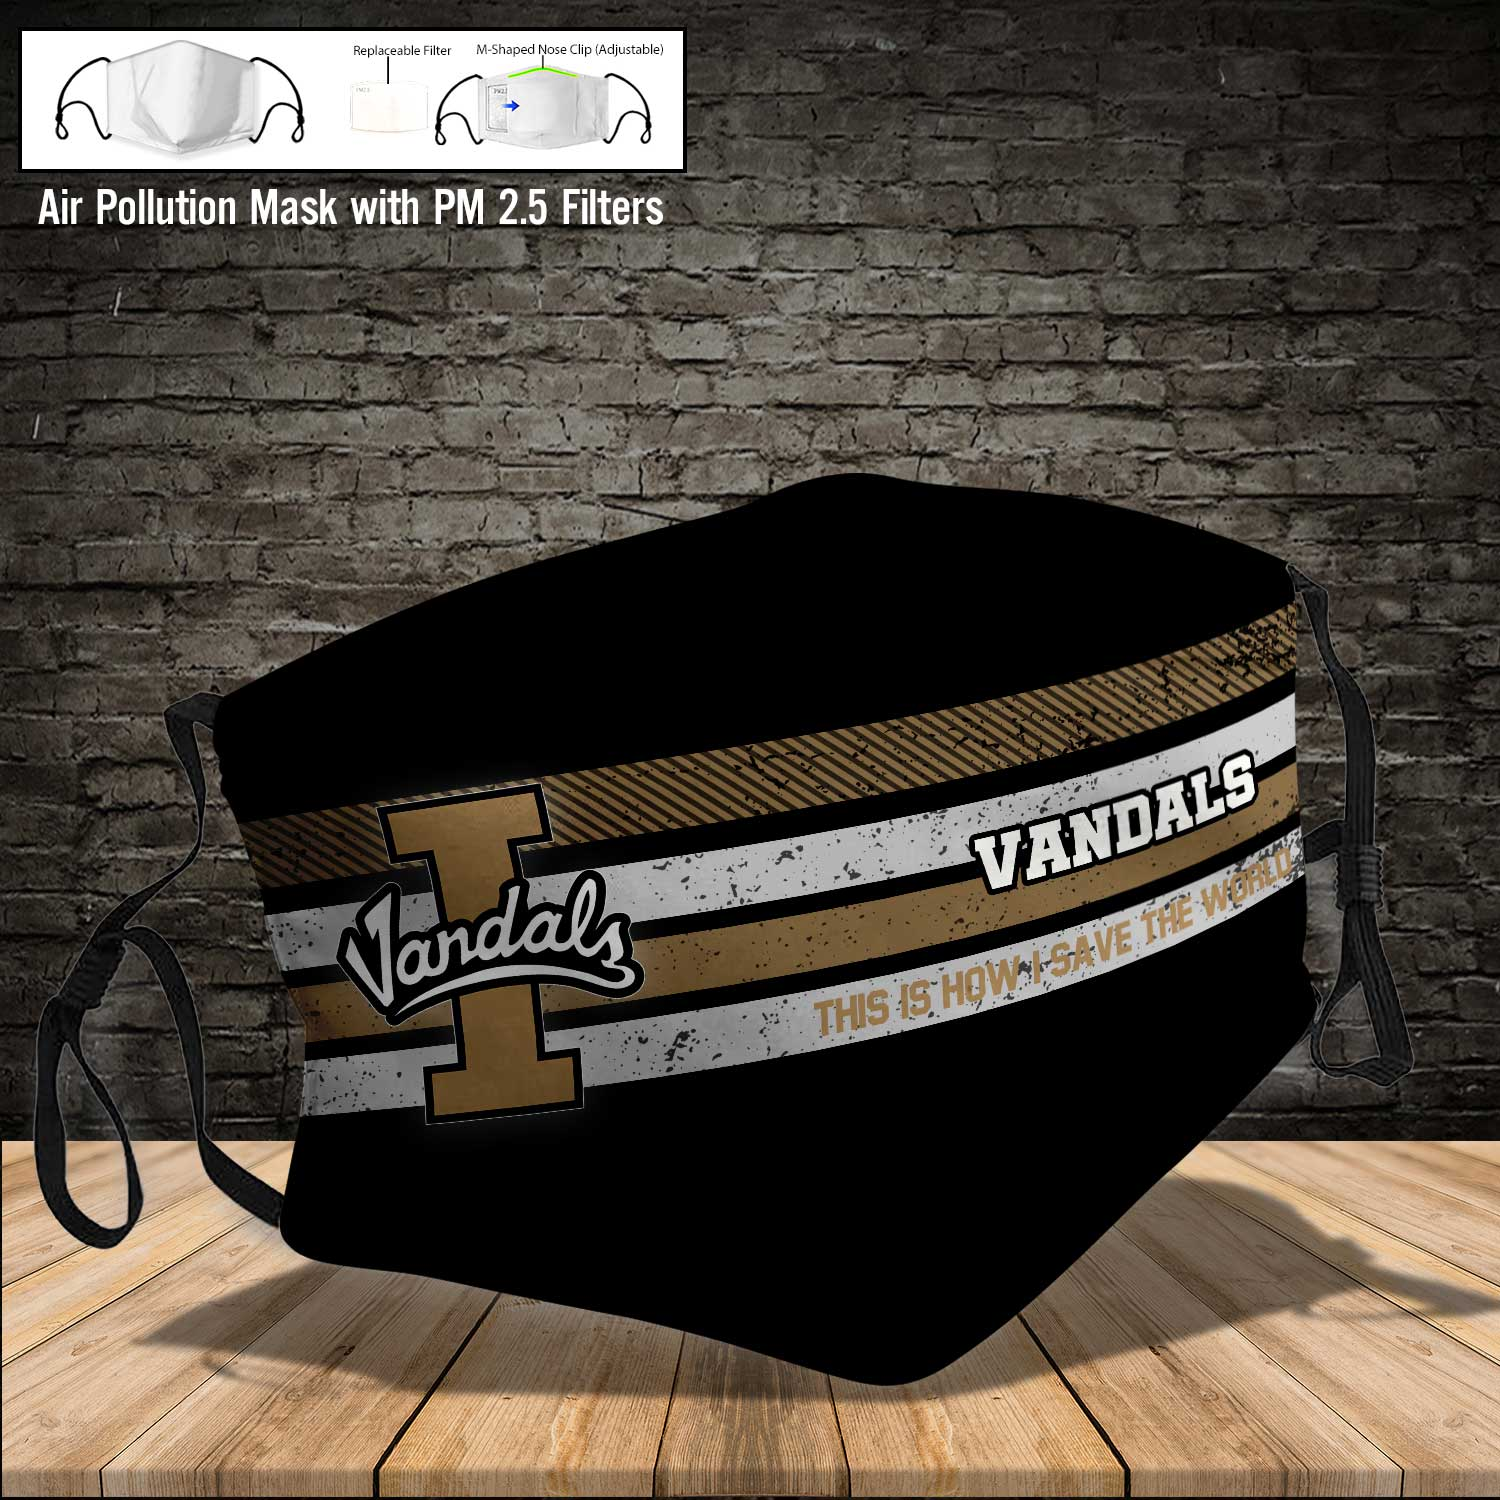 Idaho vandals this is how i save the world full printing face mask 4